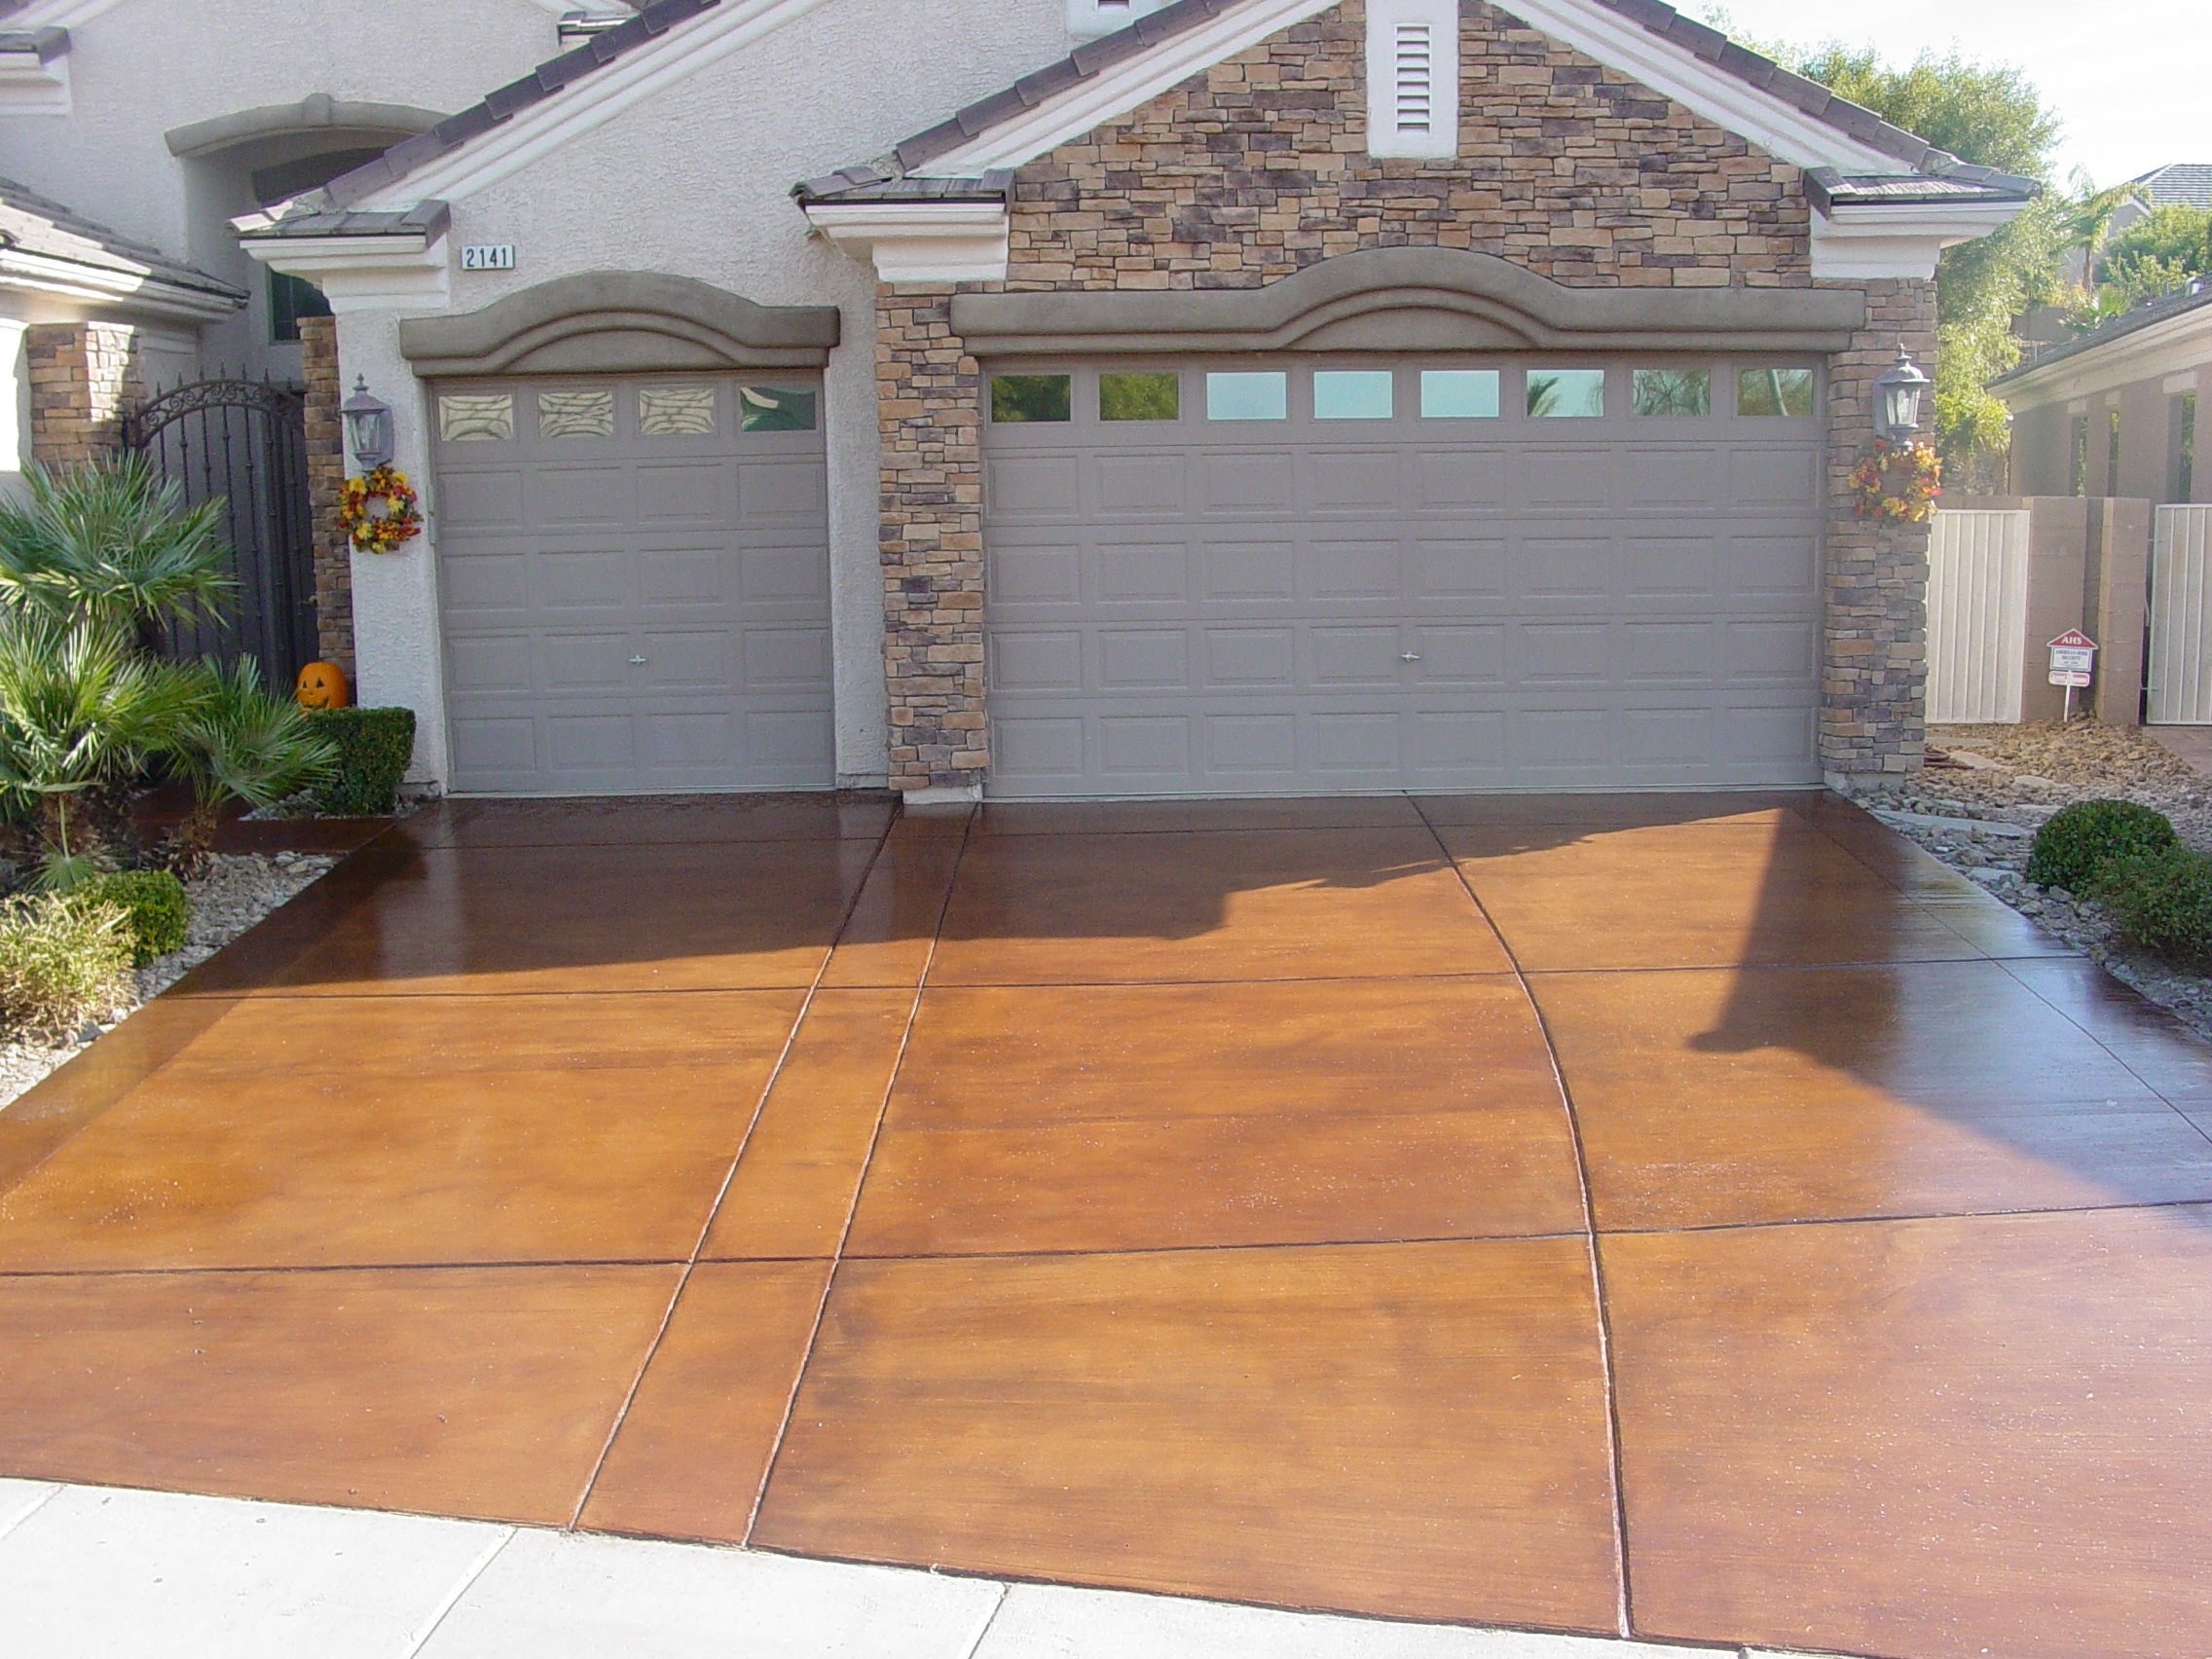 Decorative concrete driveways concrete texturingconcrete for Concrete driveway designs